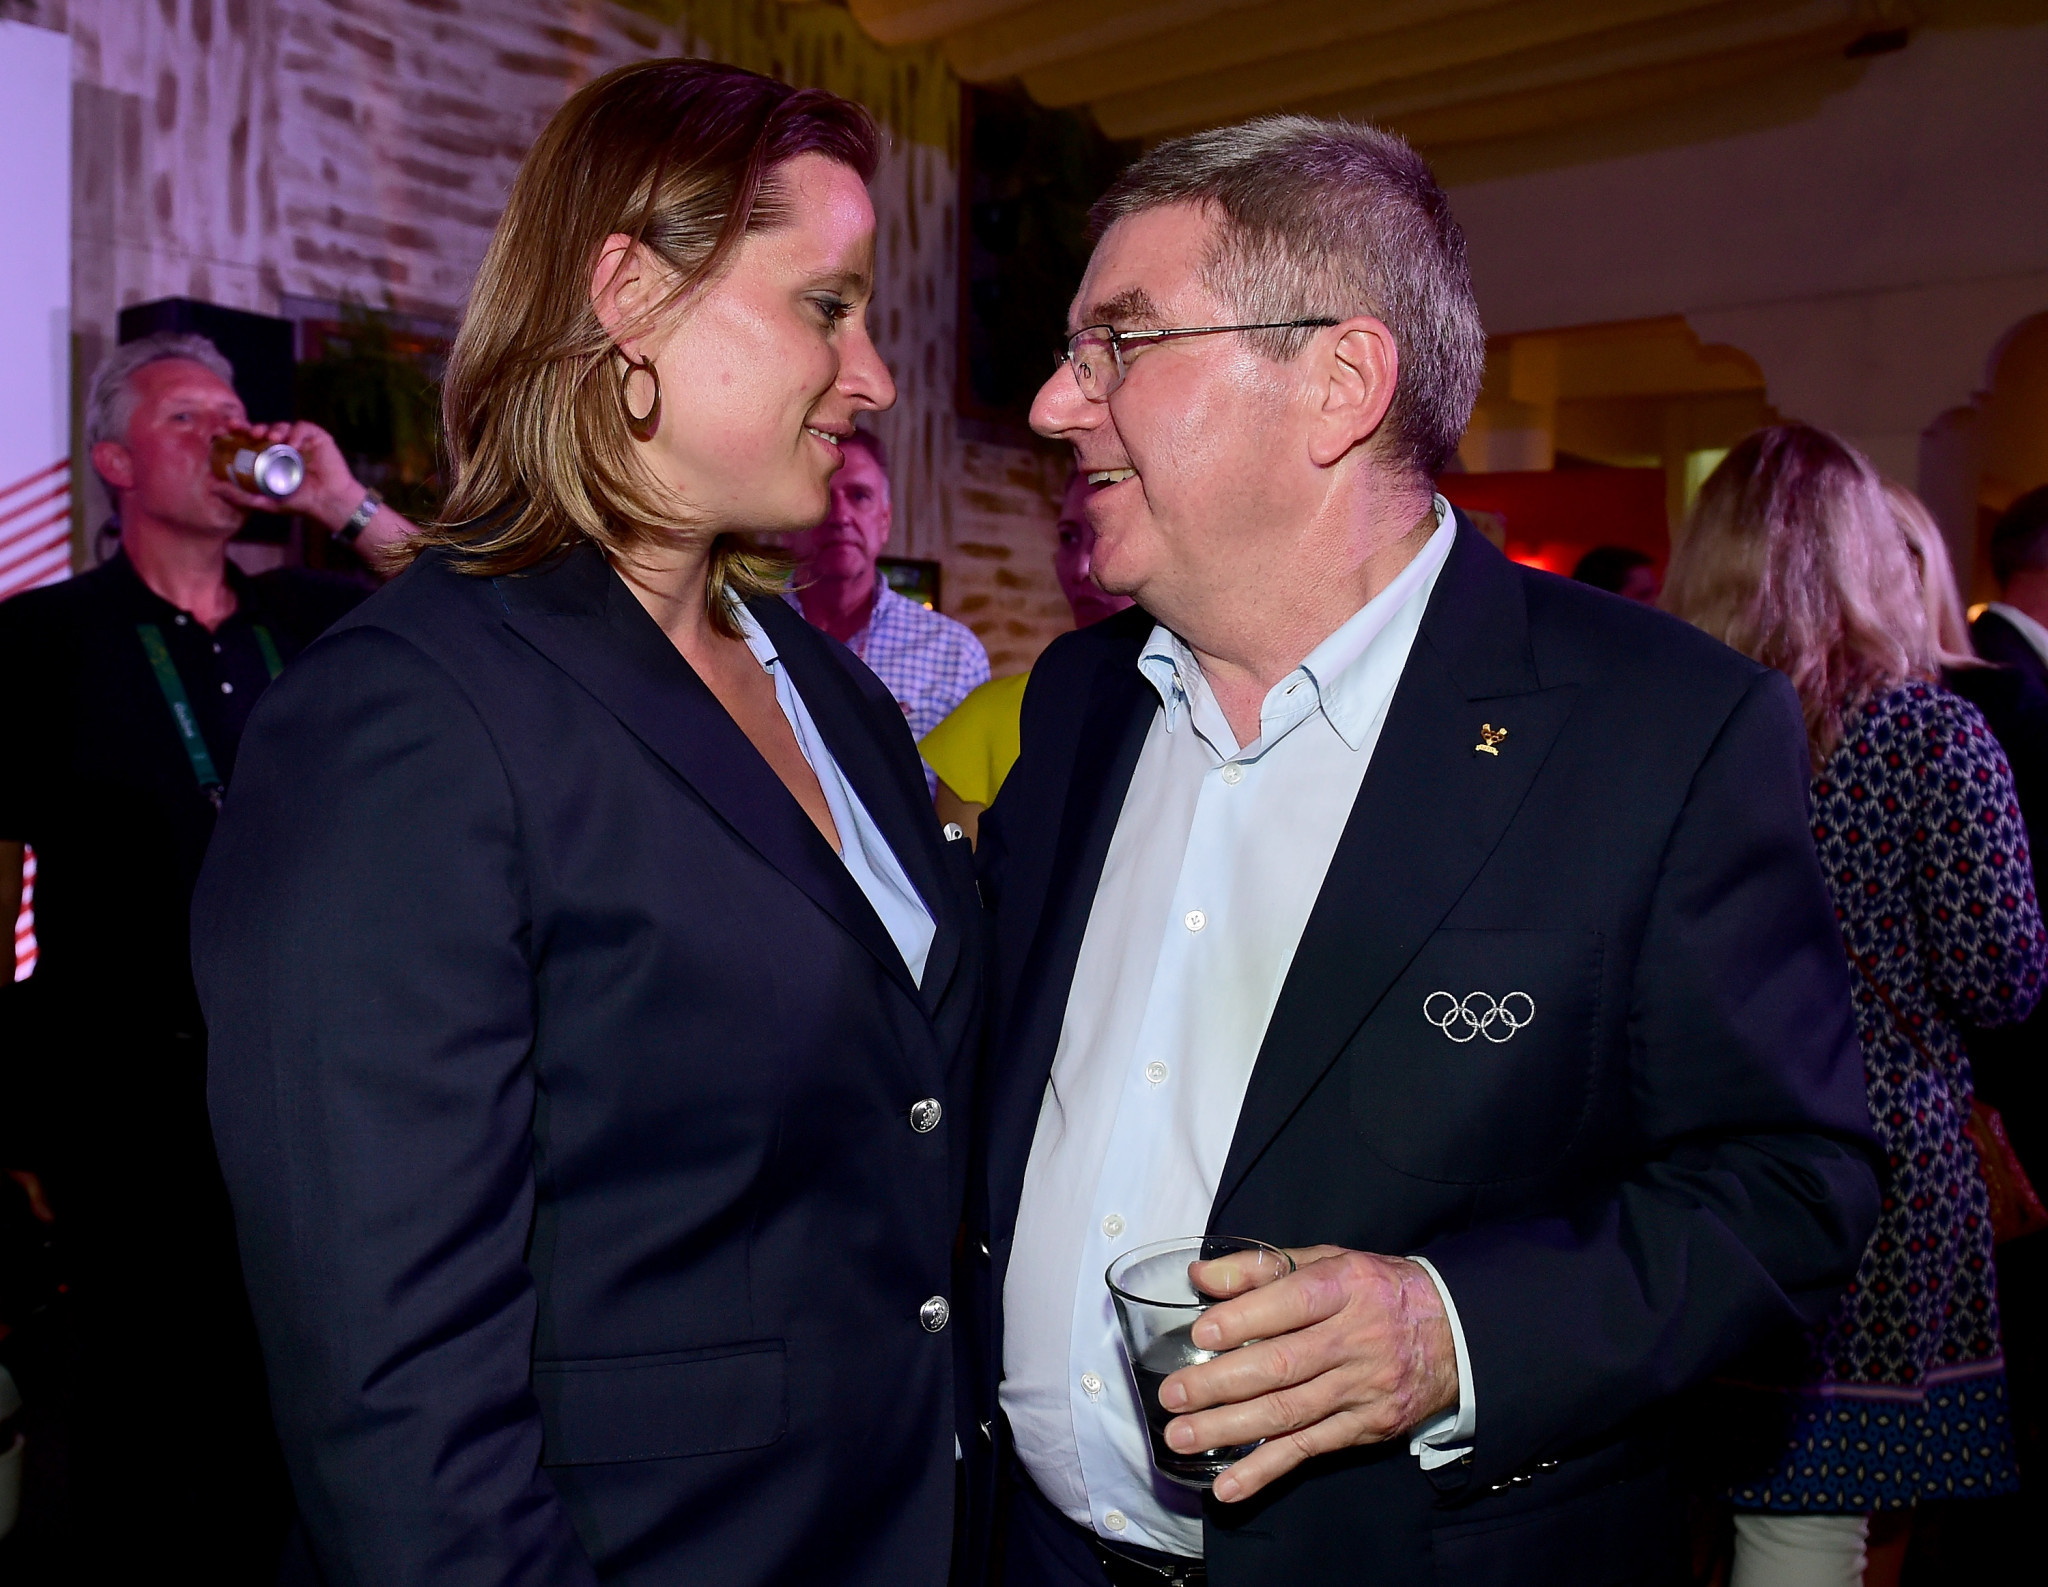 IOC Athletes' Commission chair Angela Ruggiero, left, alongside IOC President Thomas Bach ©Getty Images